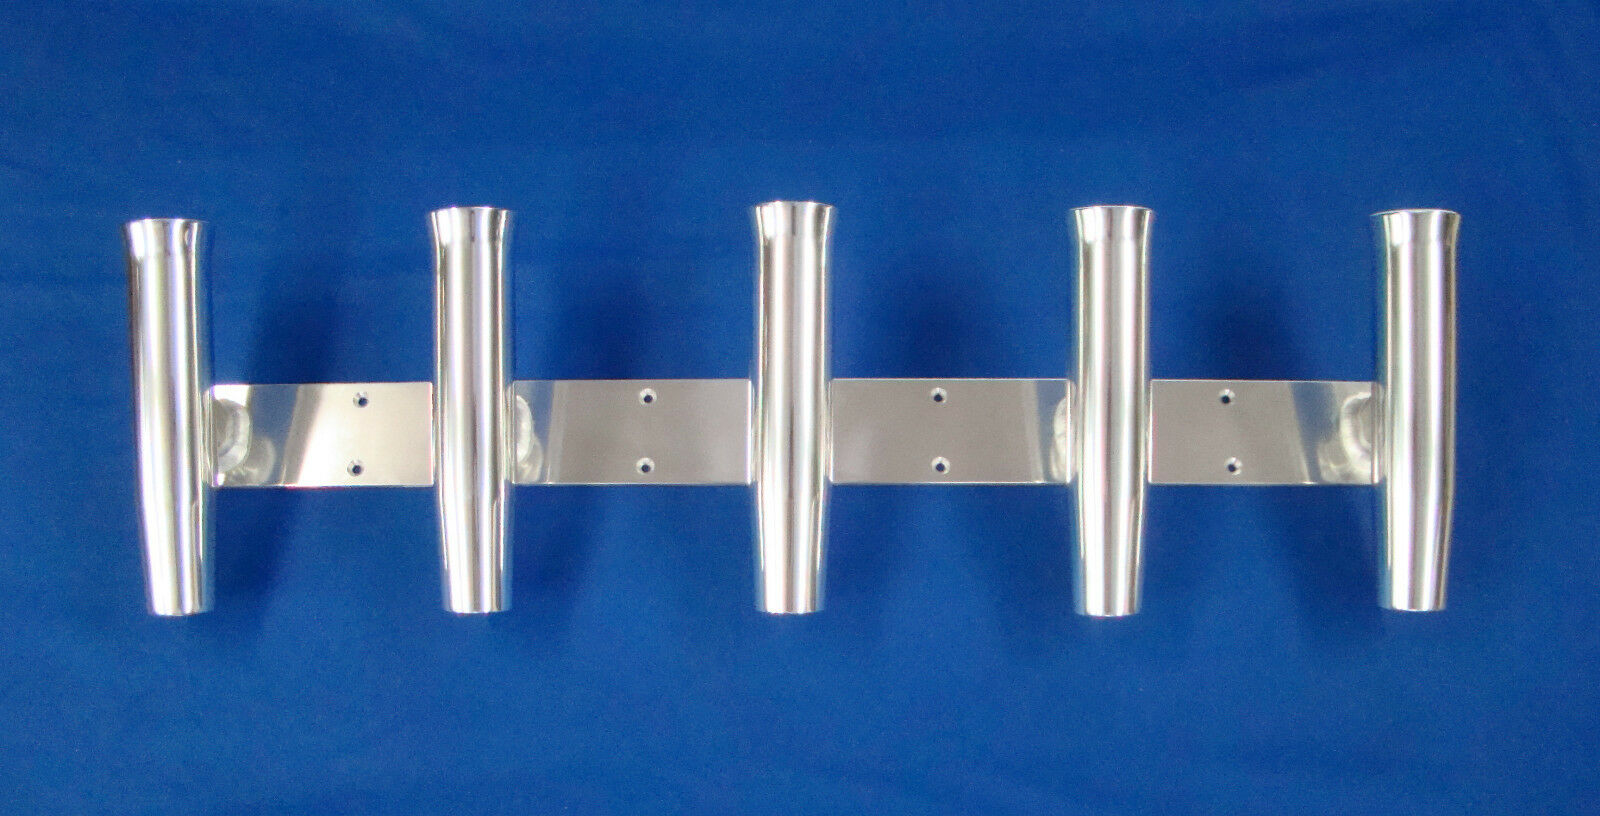 4 Pole Rocket Launcher - Rod Holders For Boat - Fishing Rod Holders